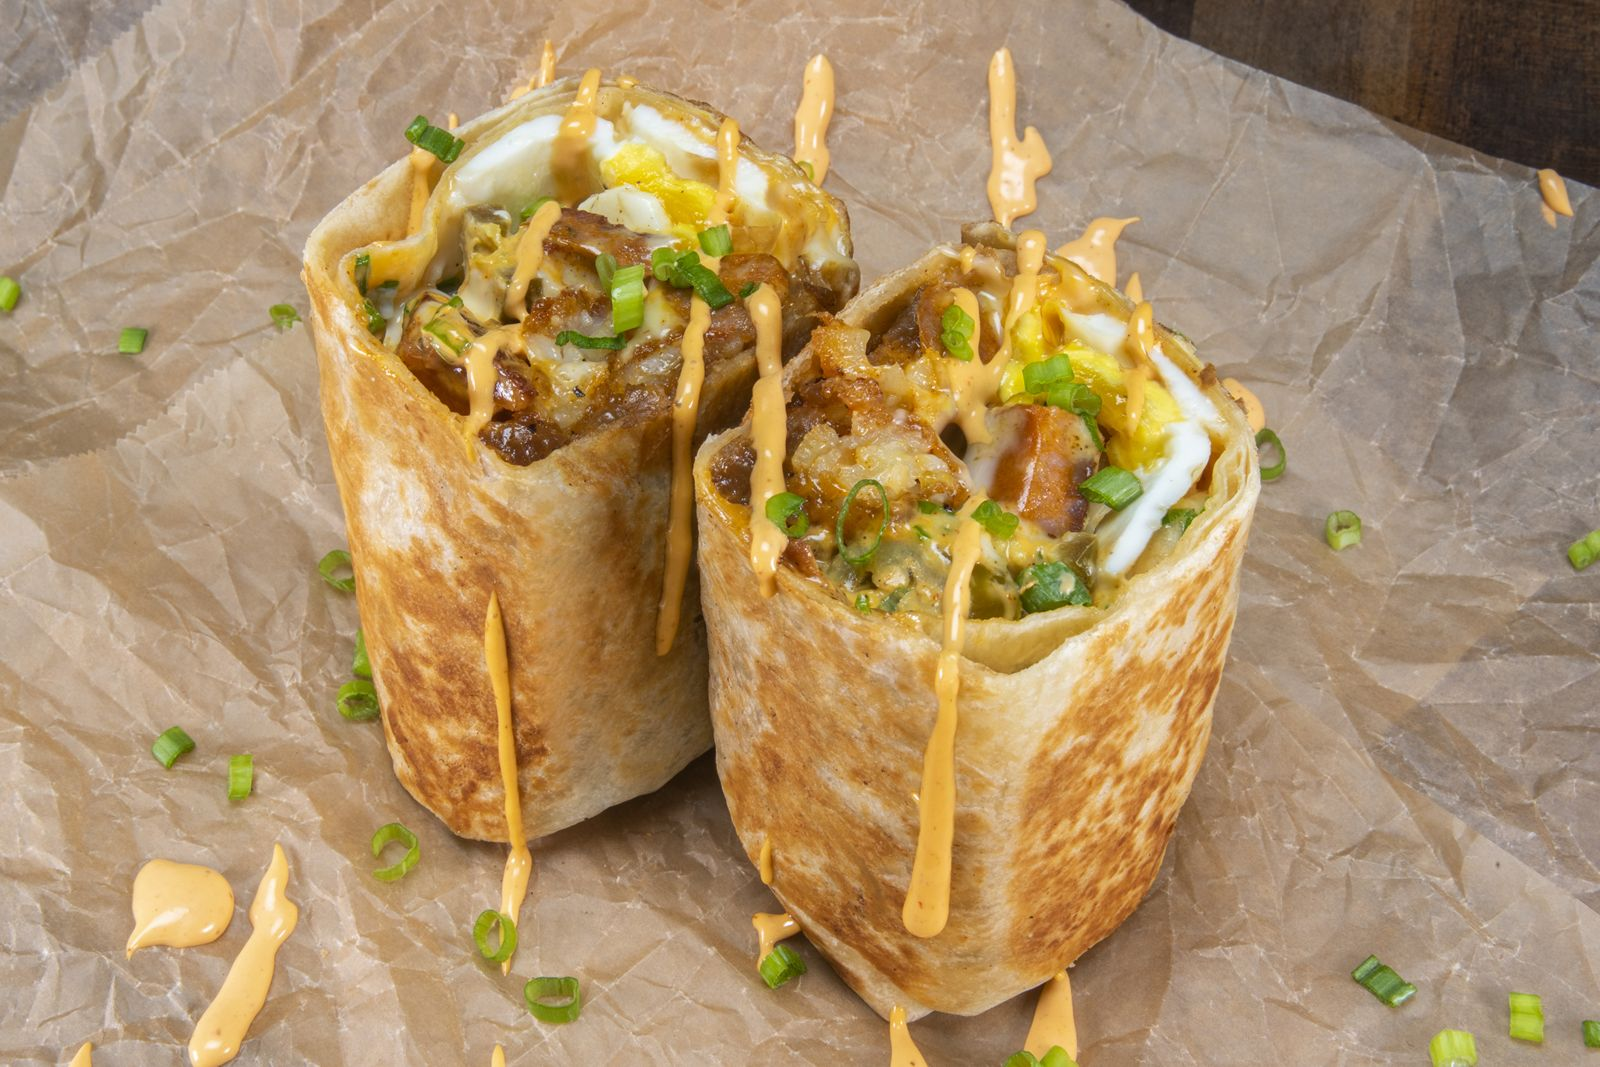 Let the Good Times Roll with Dog Haus' New Cajun Creation